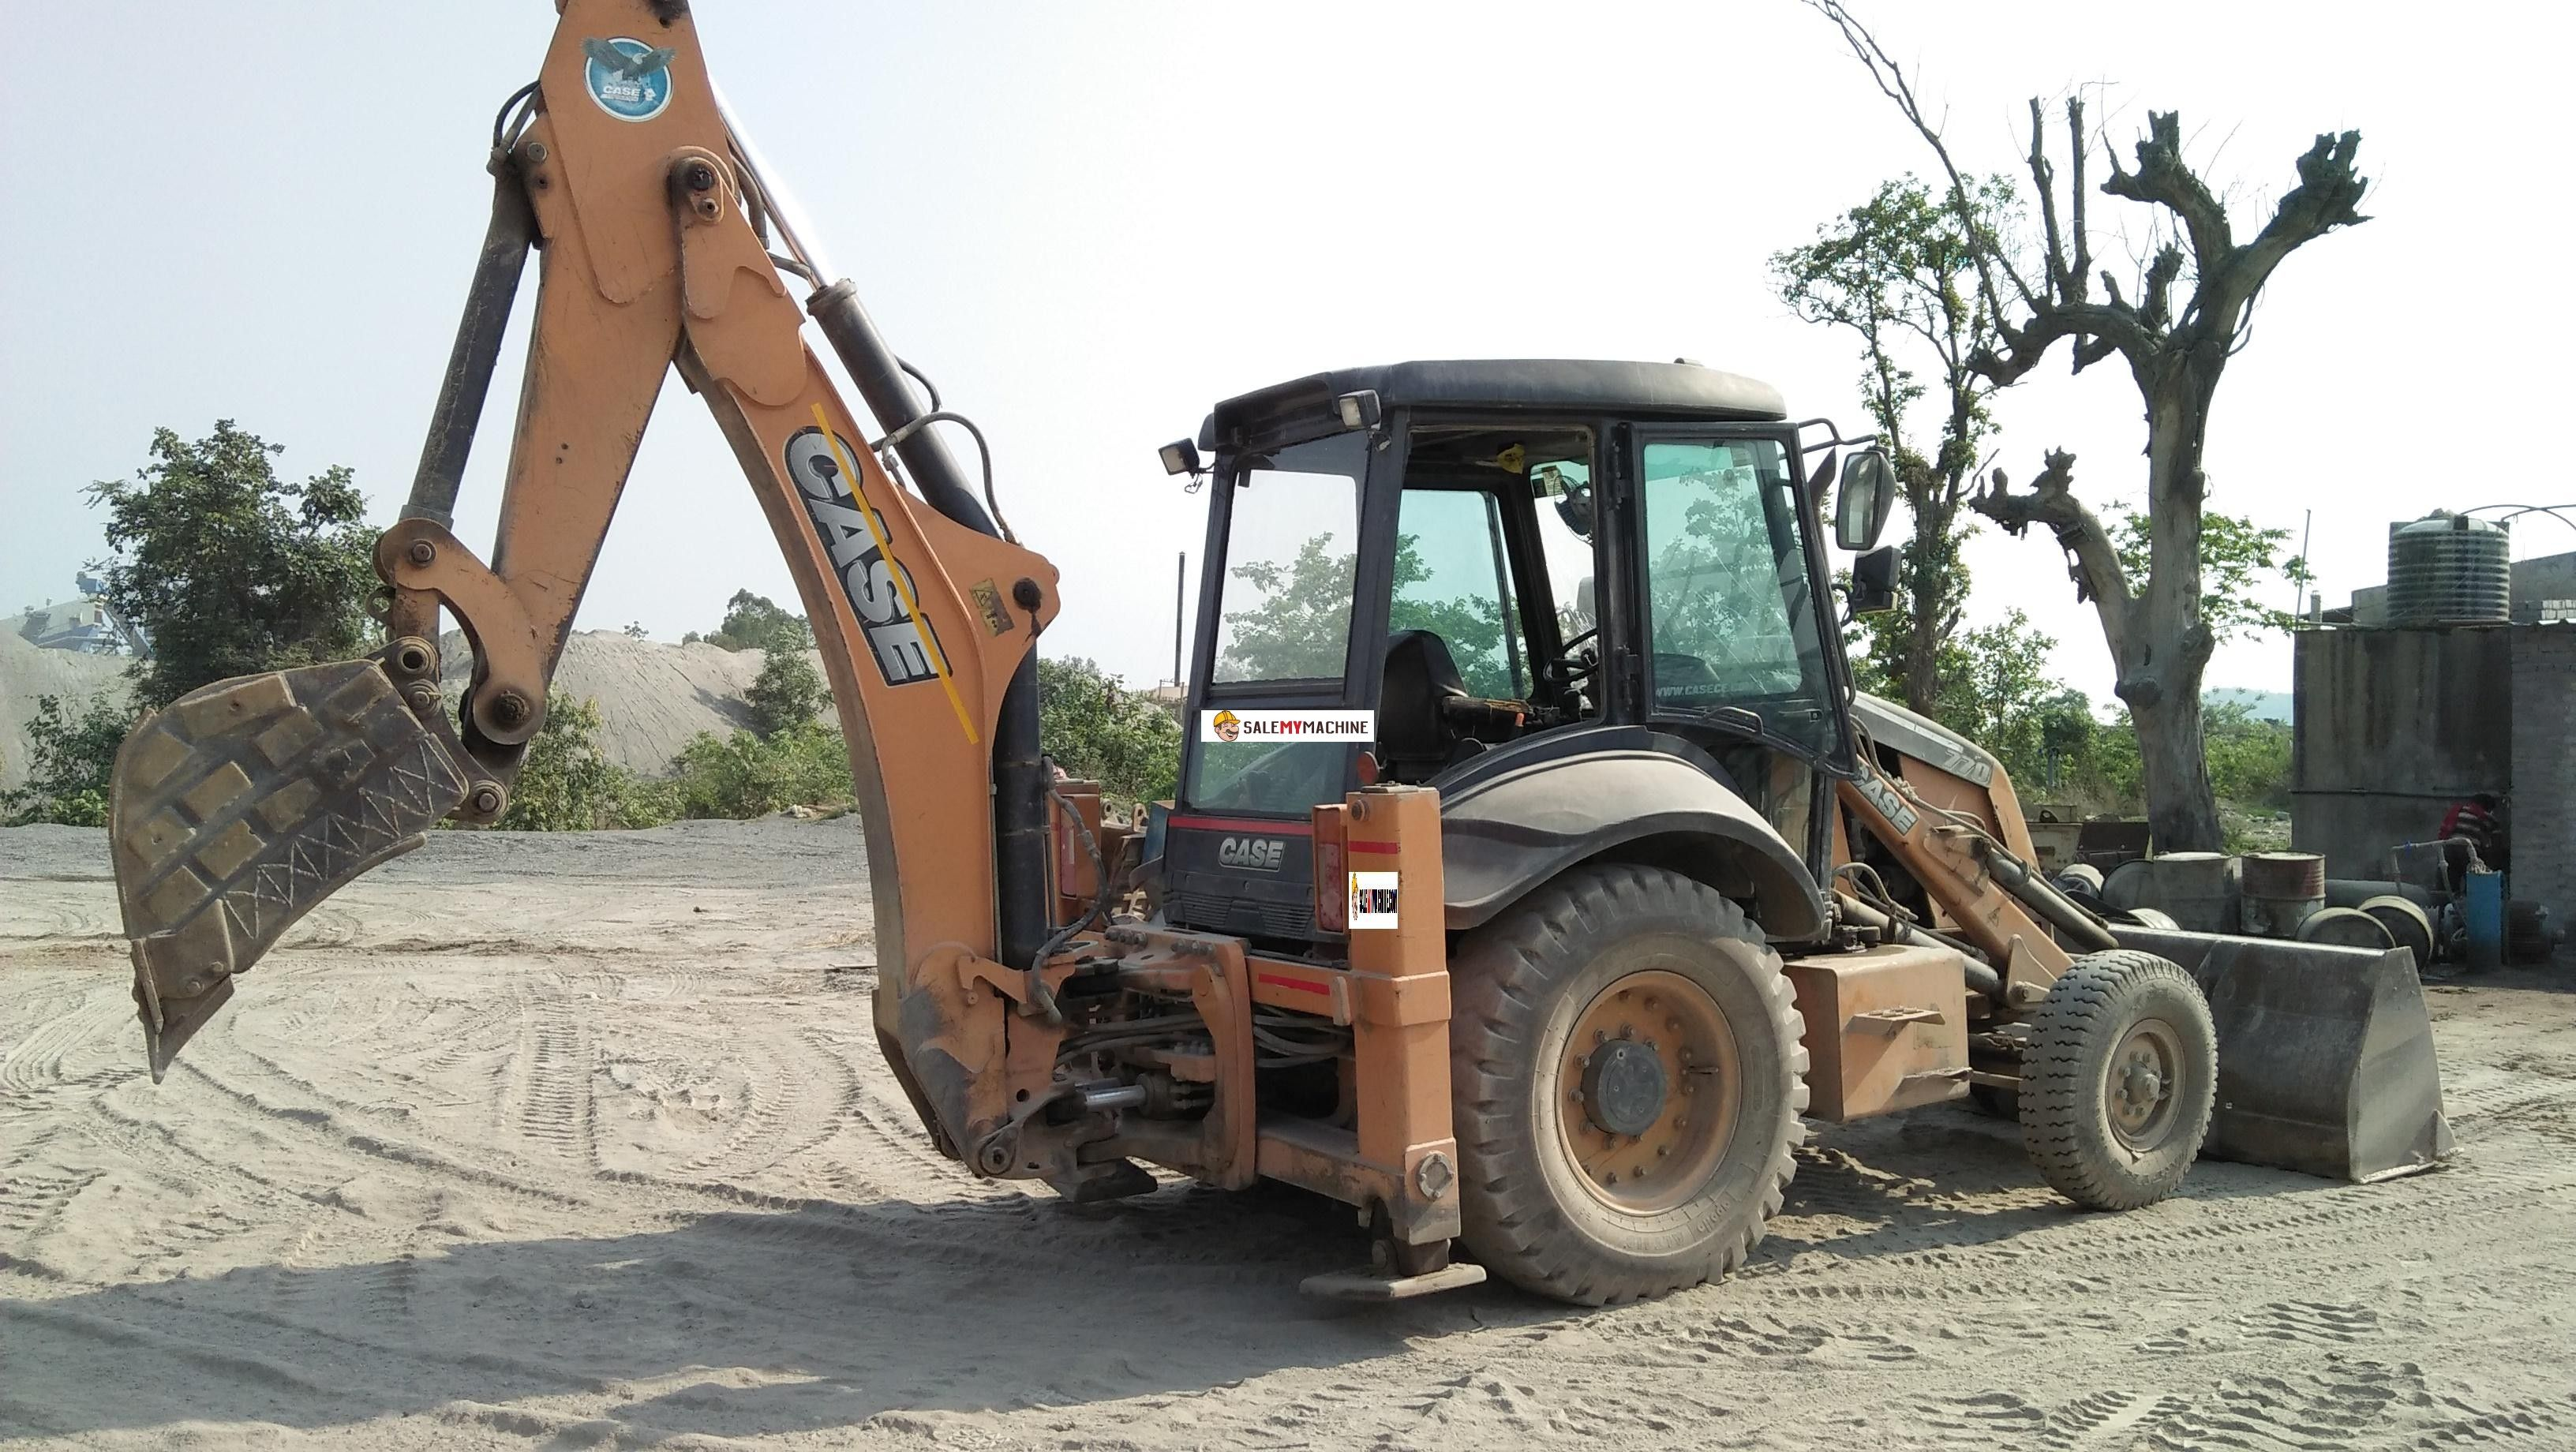 Used L&T CASE 770 for sale in odisha,india at salemymachine